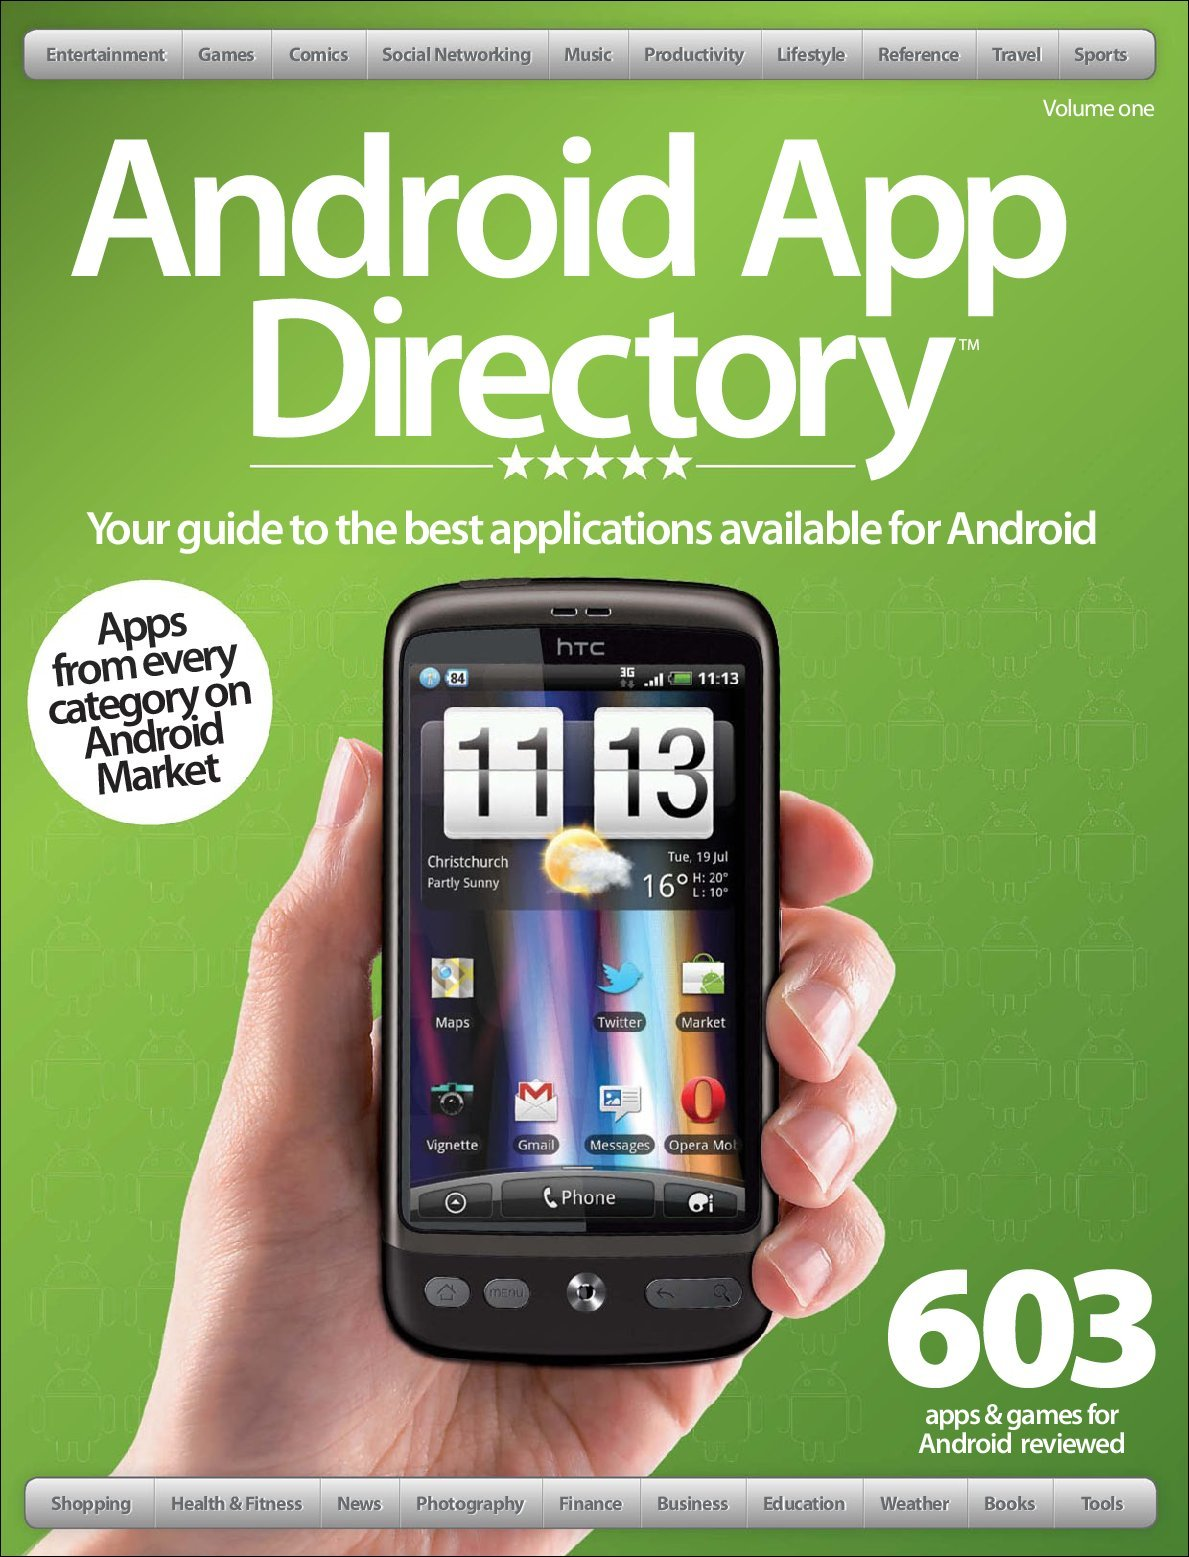 Android App Directory Vol 1 Digital